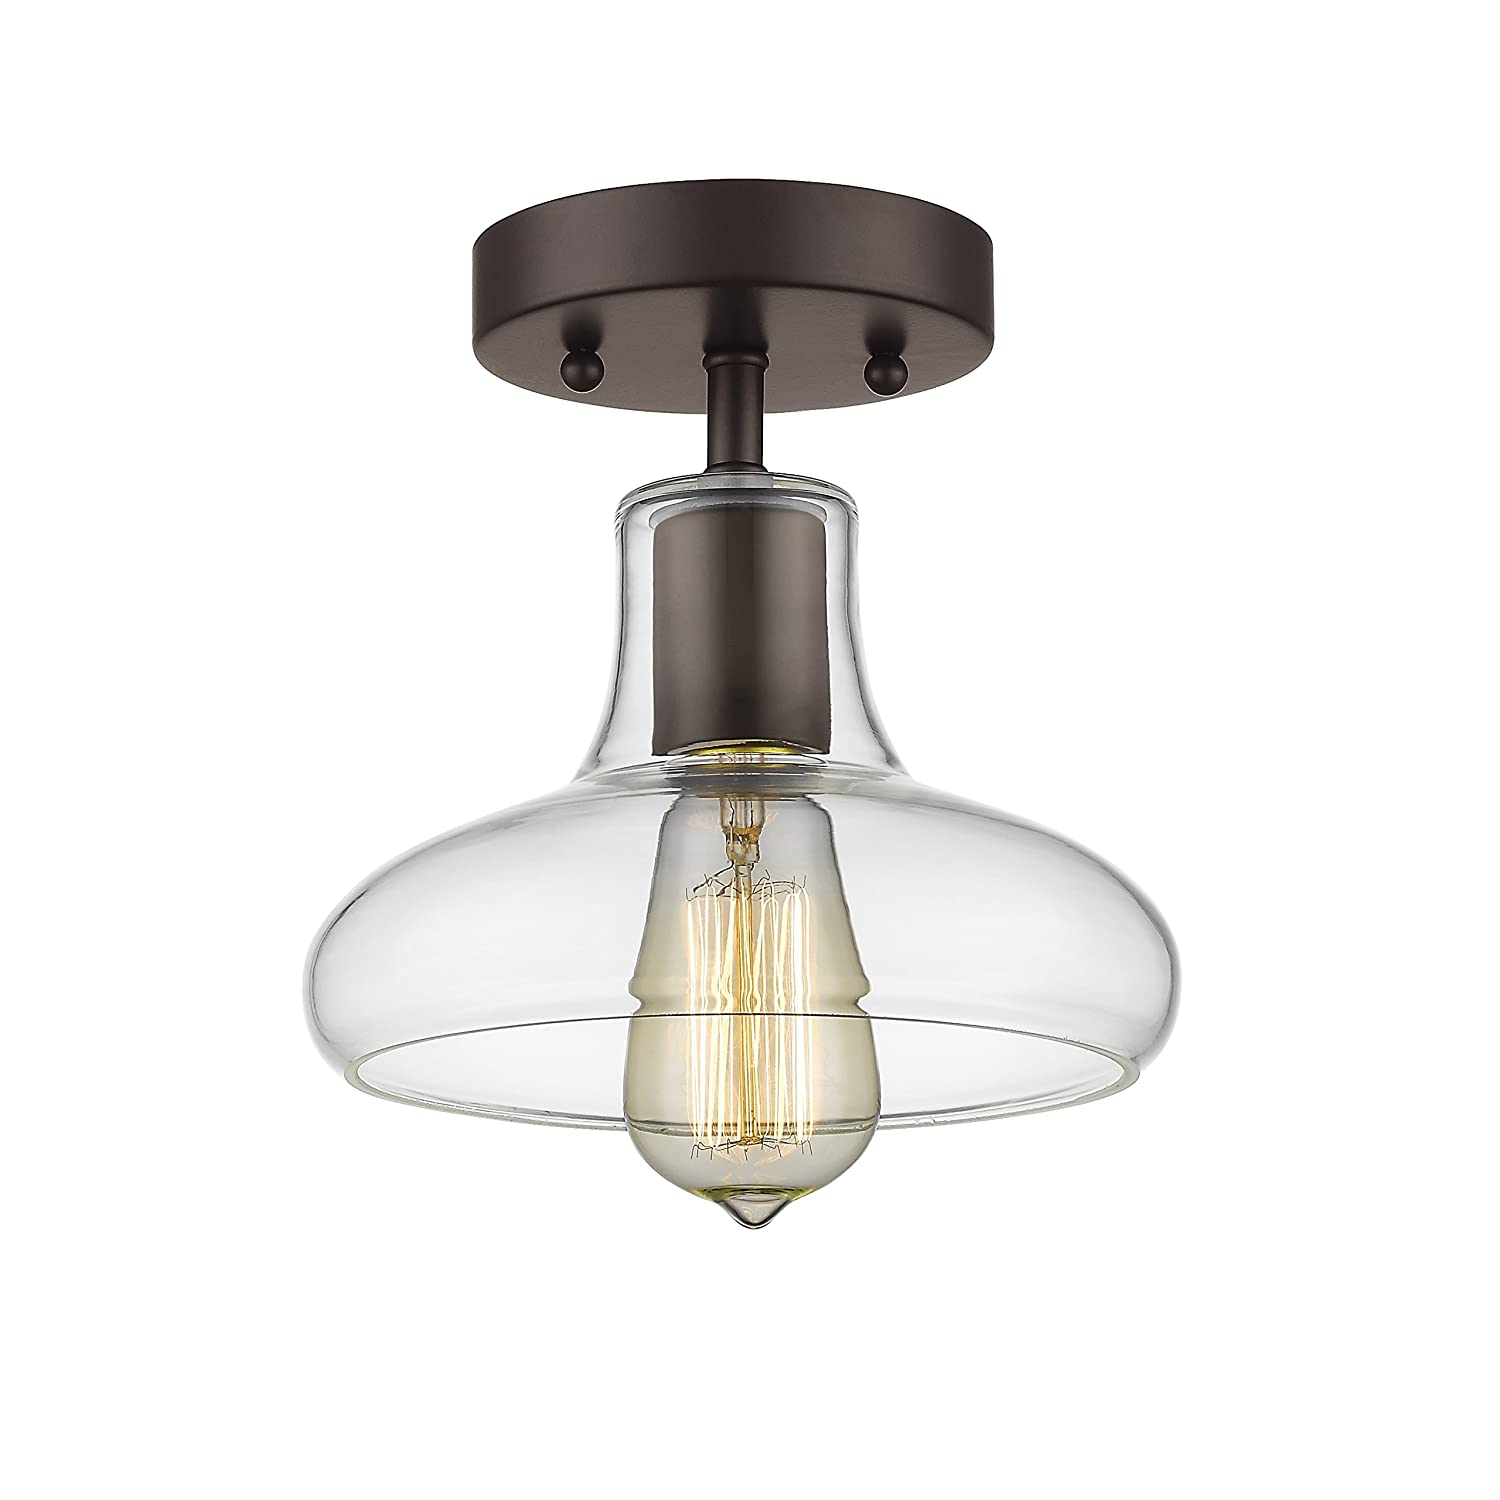 Chloe loft industrial 2 light oil rubbed bronze wall sconce free - Chloe Lighting Ch854009cl08 Sf1 Industrial Industrial Style 1 Light Rubbed Bronze Semi Flush Ceiling Fixture 8 Shade Amazon Com